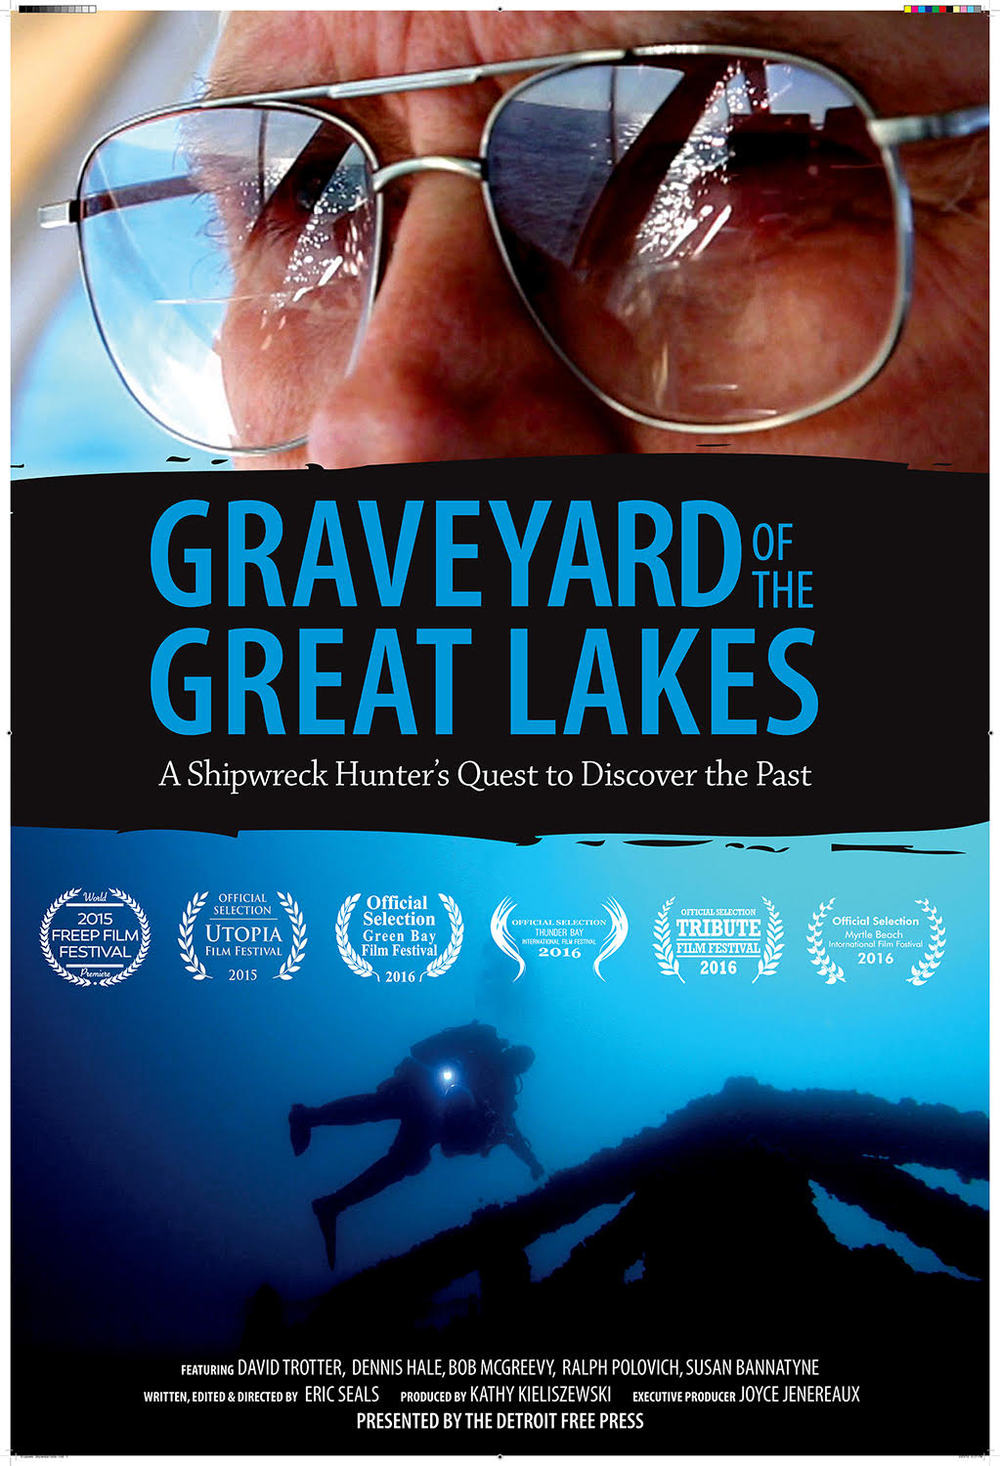 Graveyard of the Great Lakes